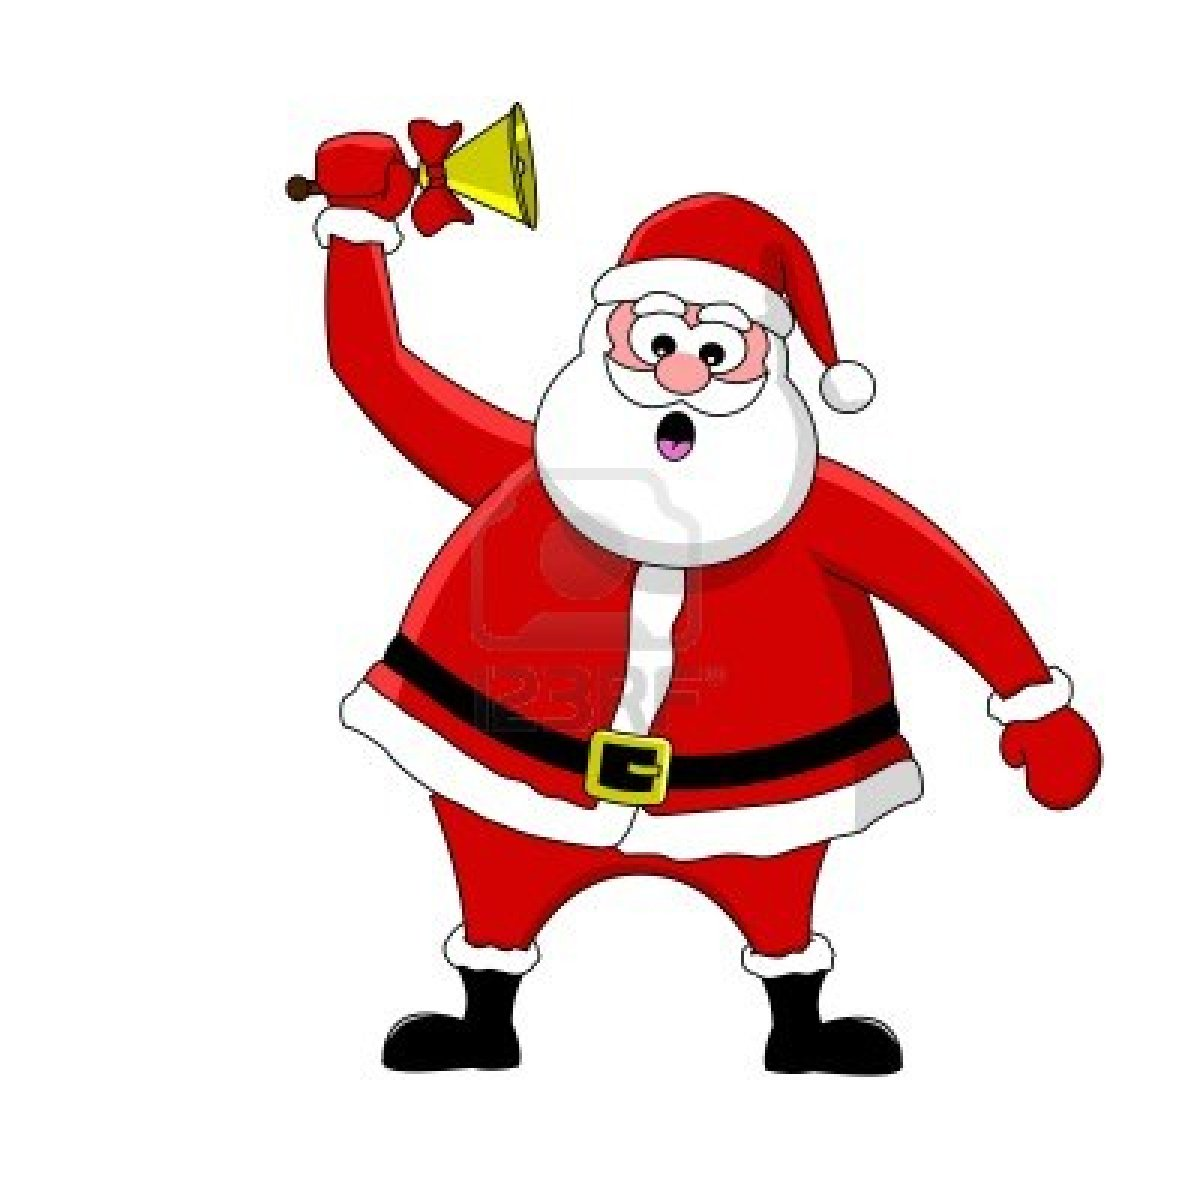 Moving clipart santa claus Images 100+* Images Claus] Animated